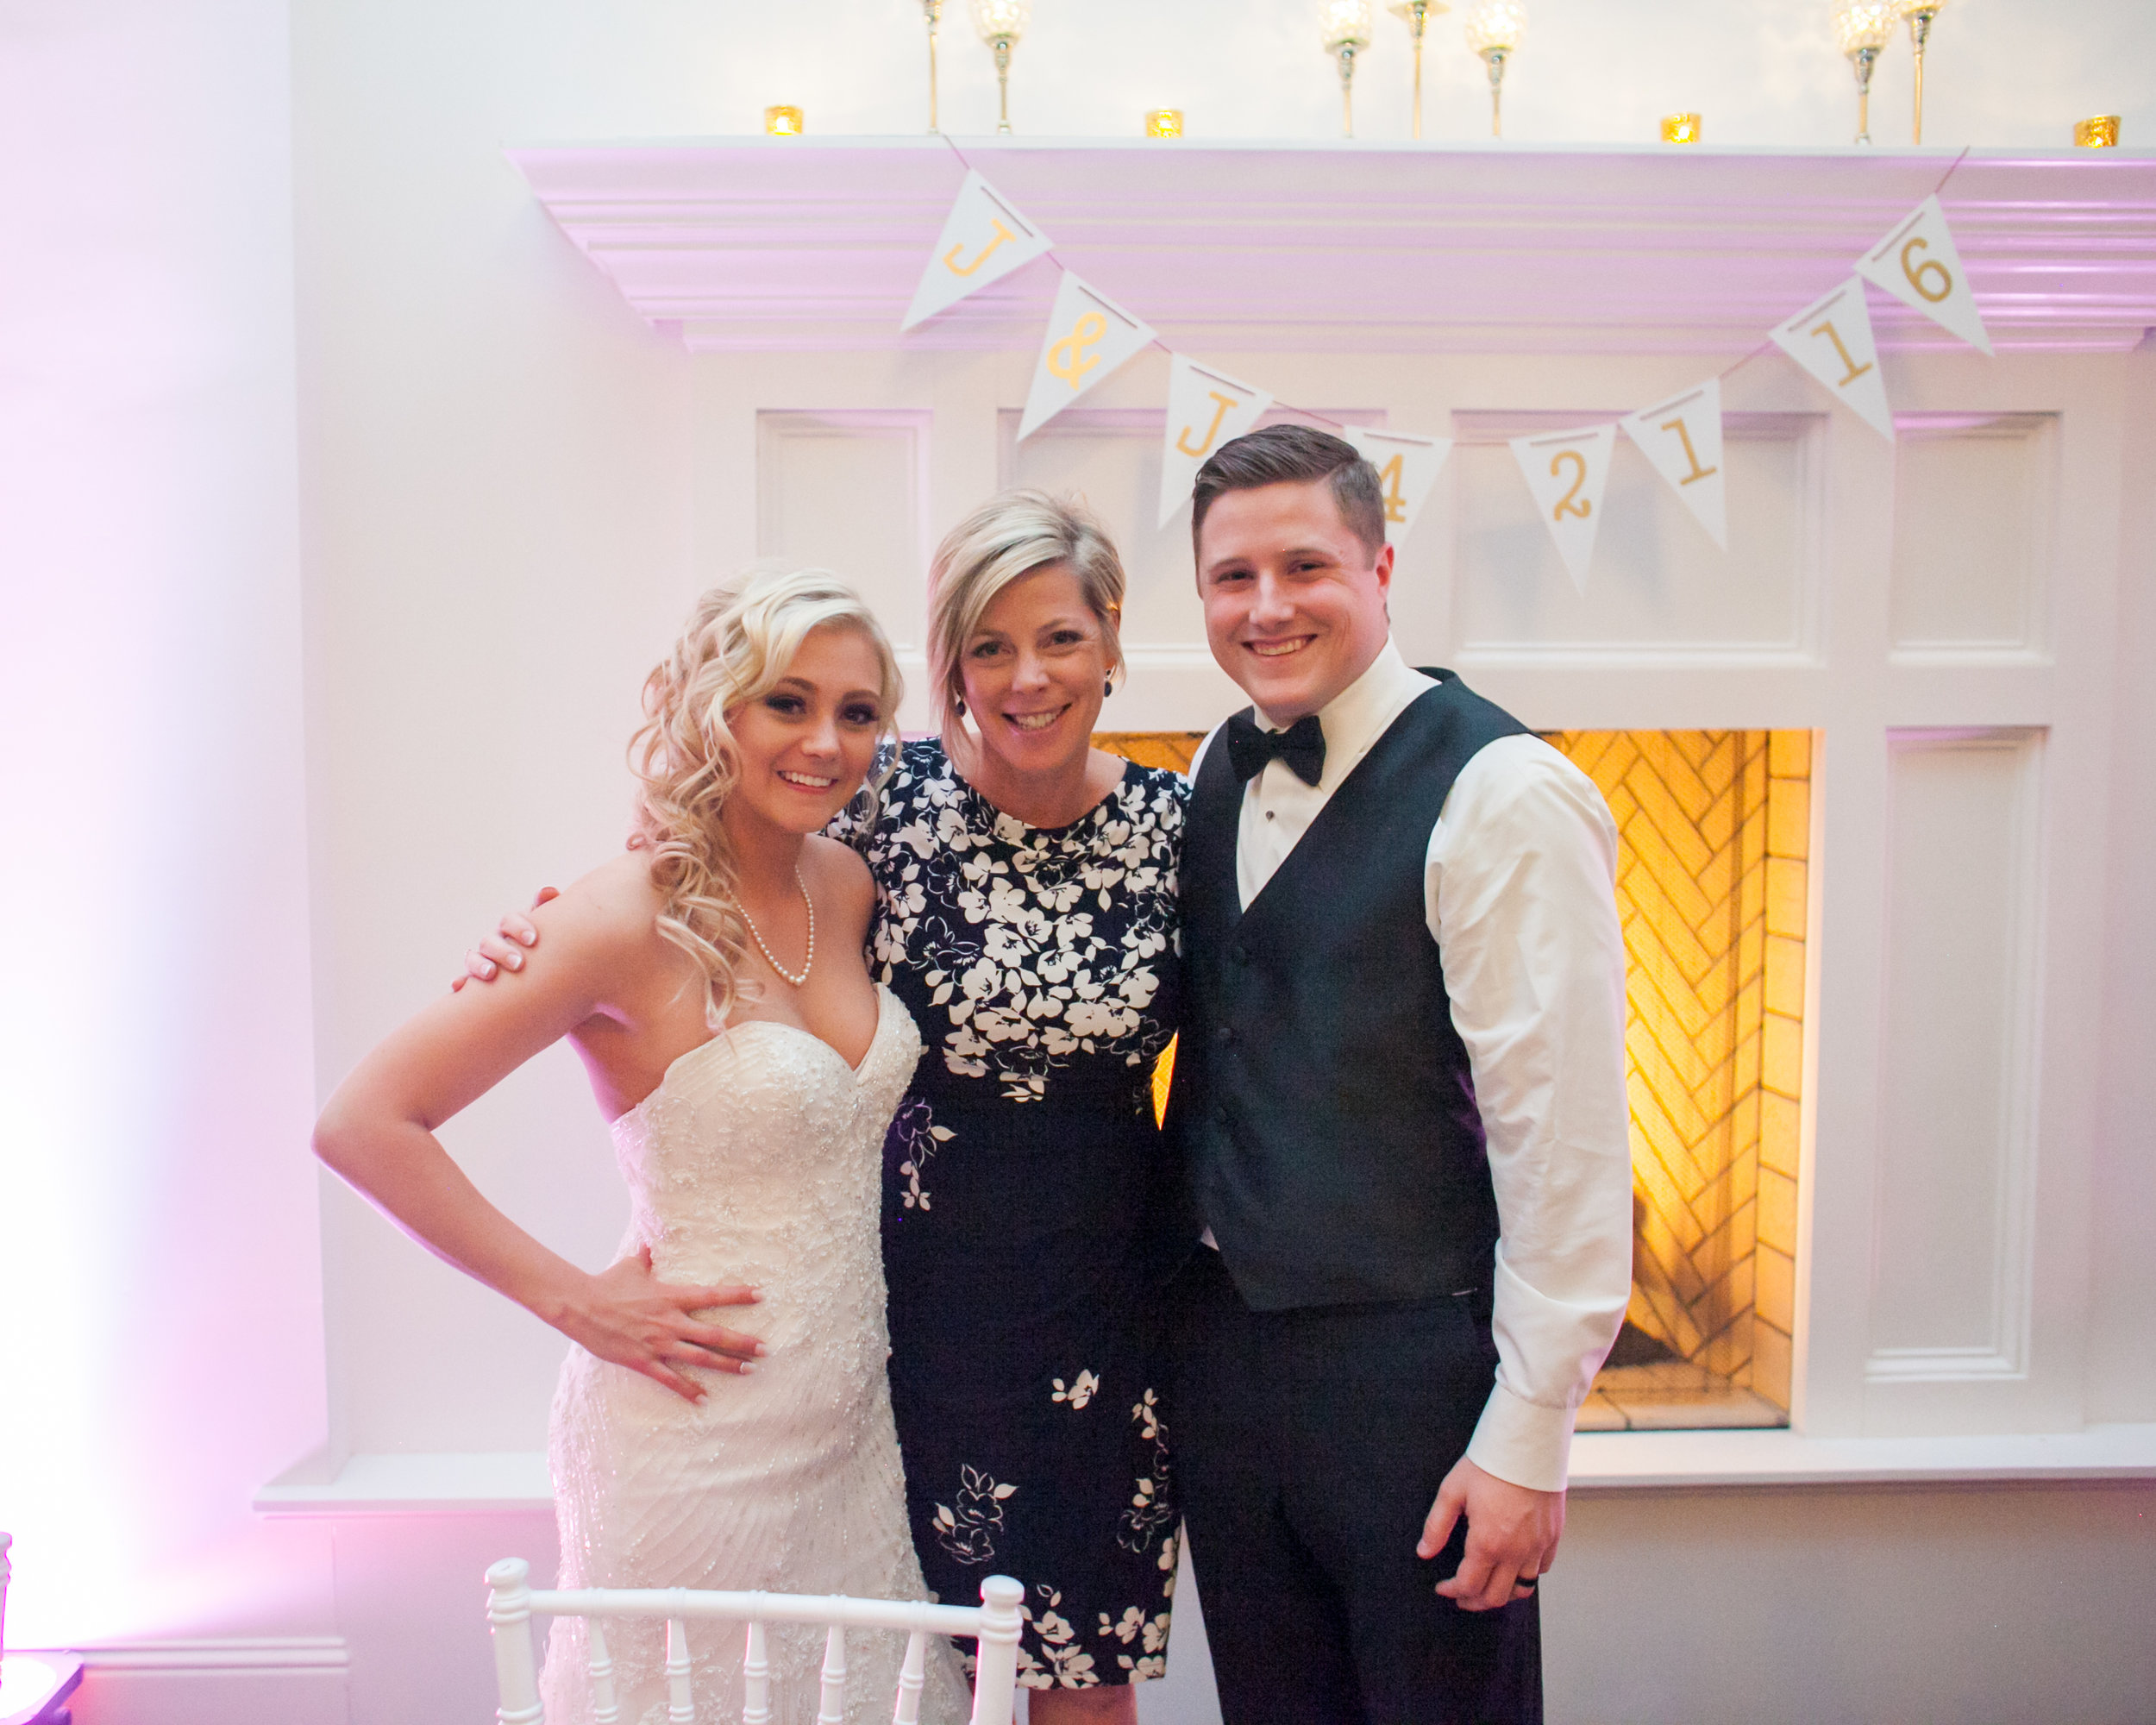 Image of my gorgeous couple with me (their wedding planner) at their reception by  Elliot Marsh Photography